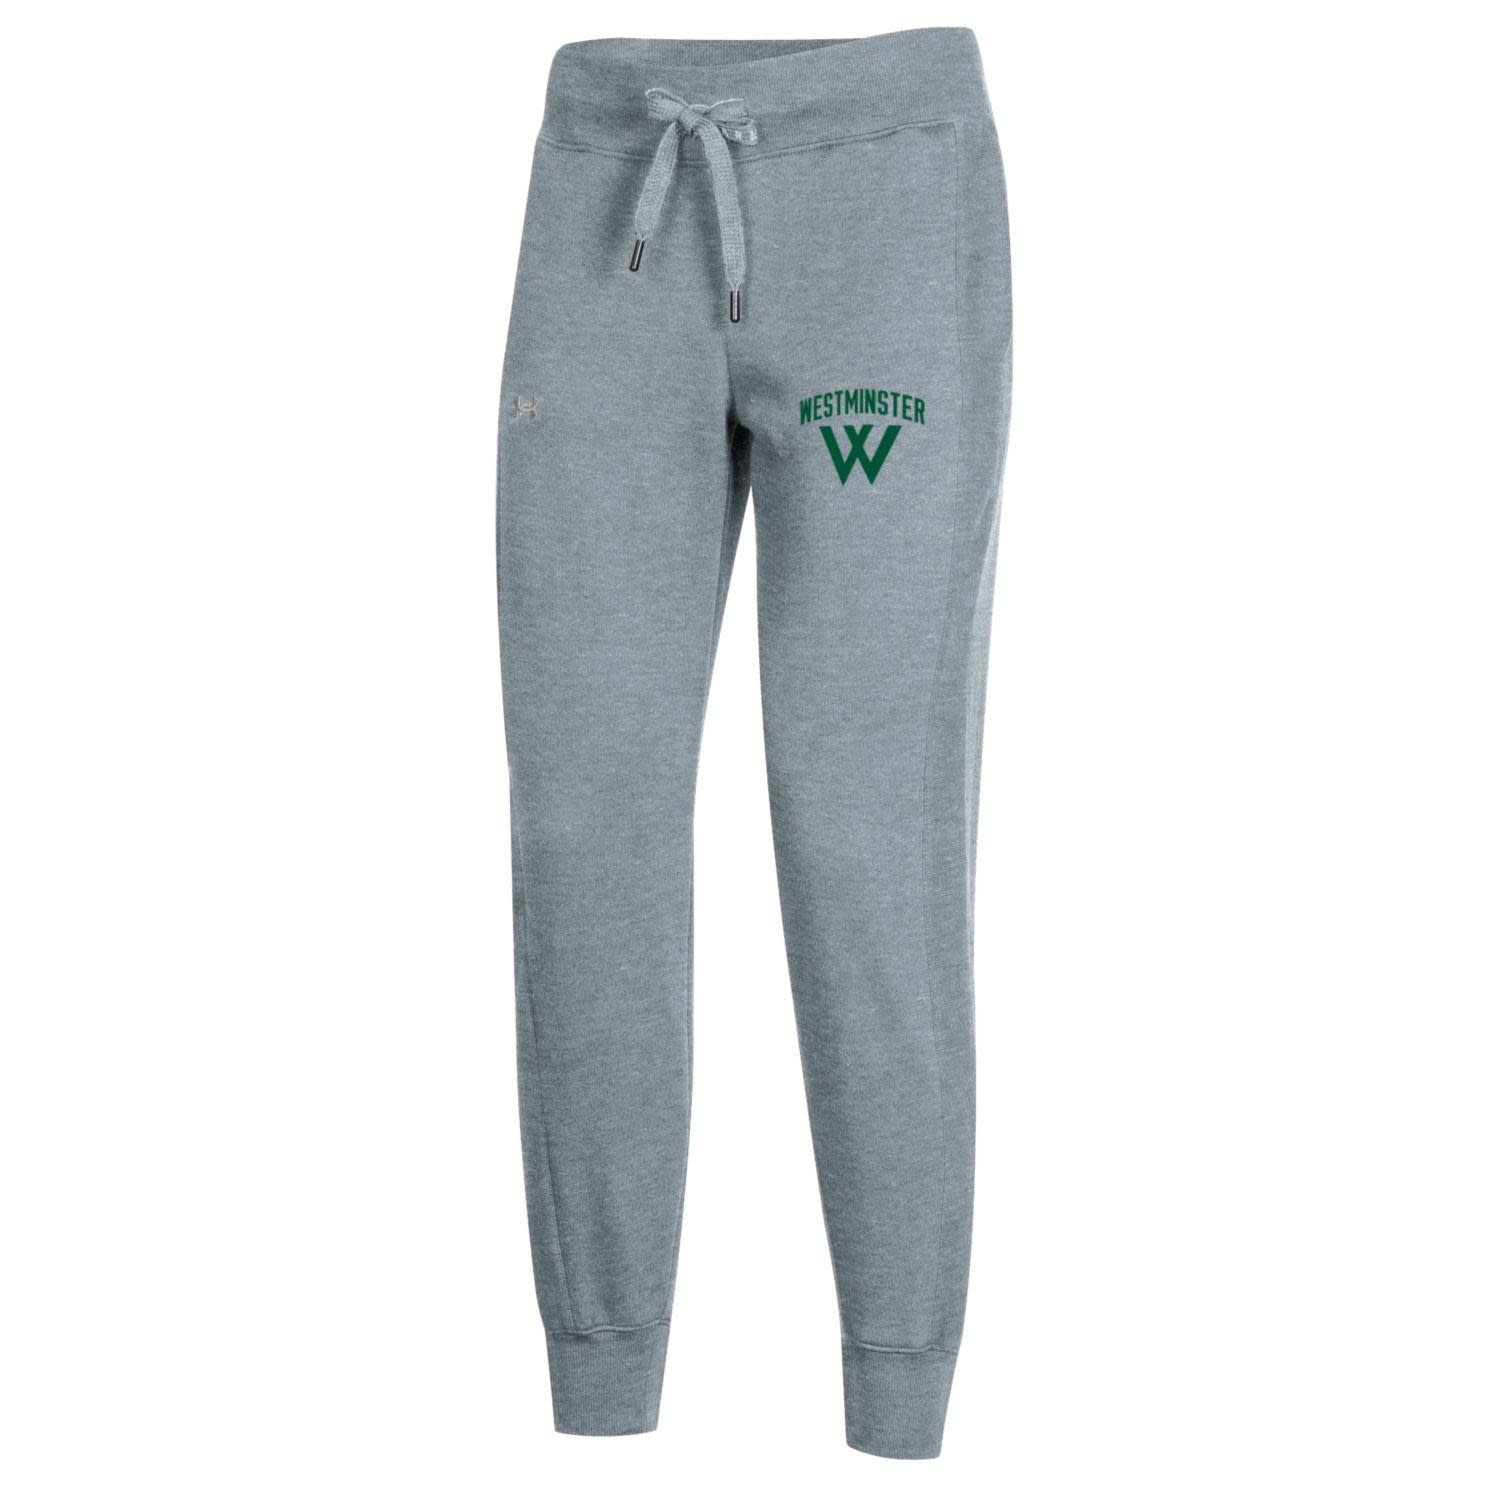 Under Armour Sweatpants: Womens All Day Jogger - True Gray Heather